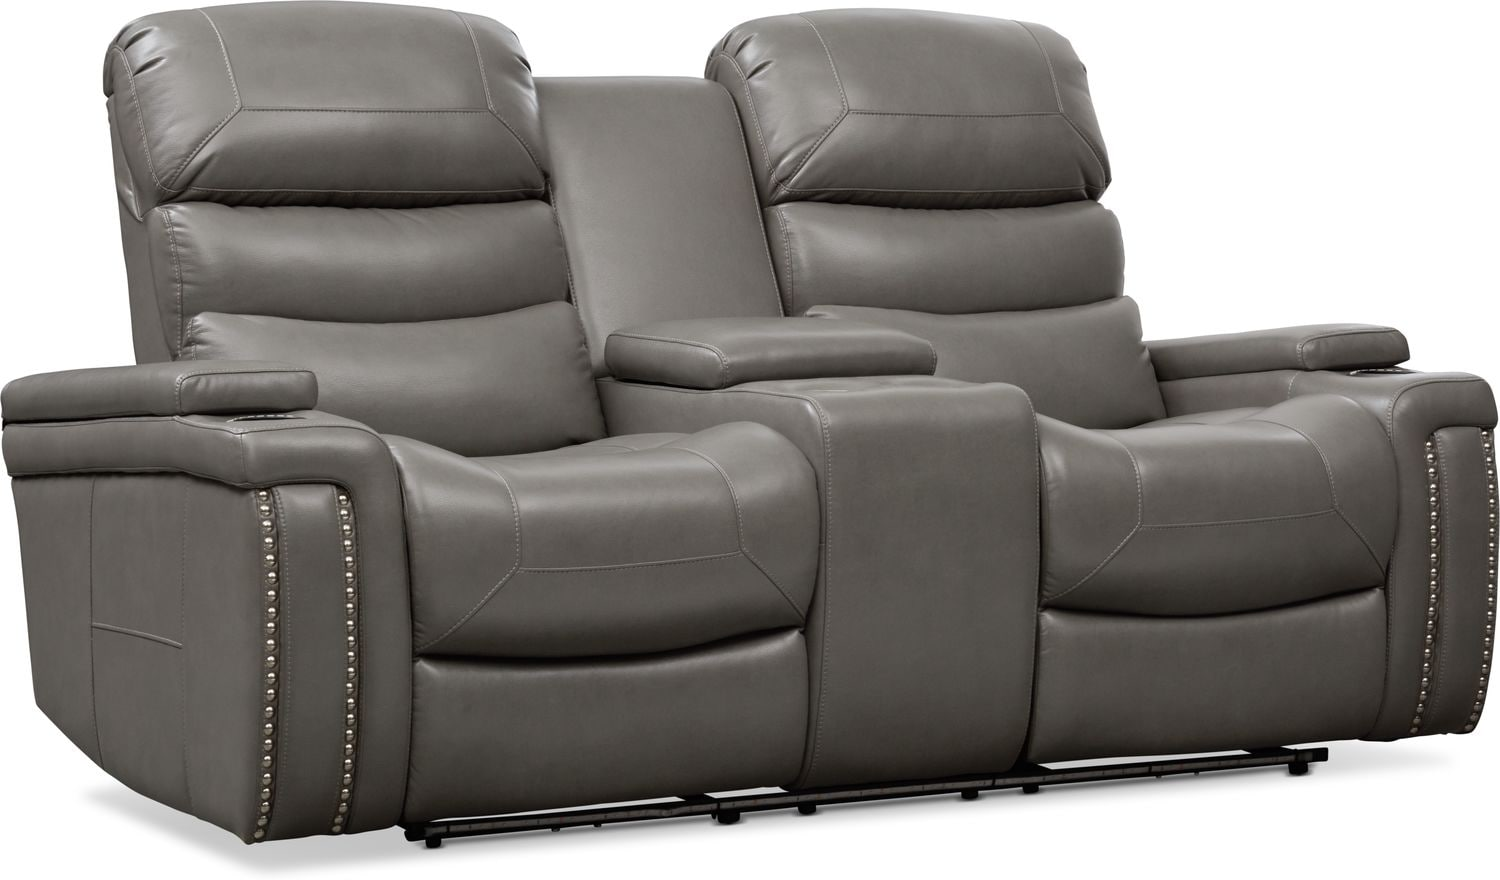 Living Room Furniture - Jackson Triple Power Reclining Loveseat